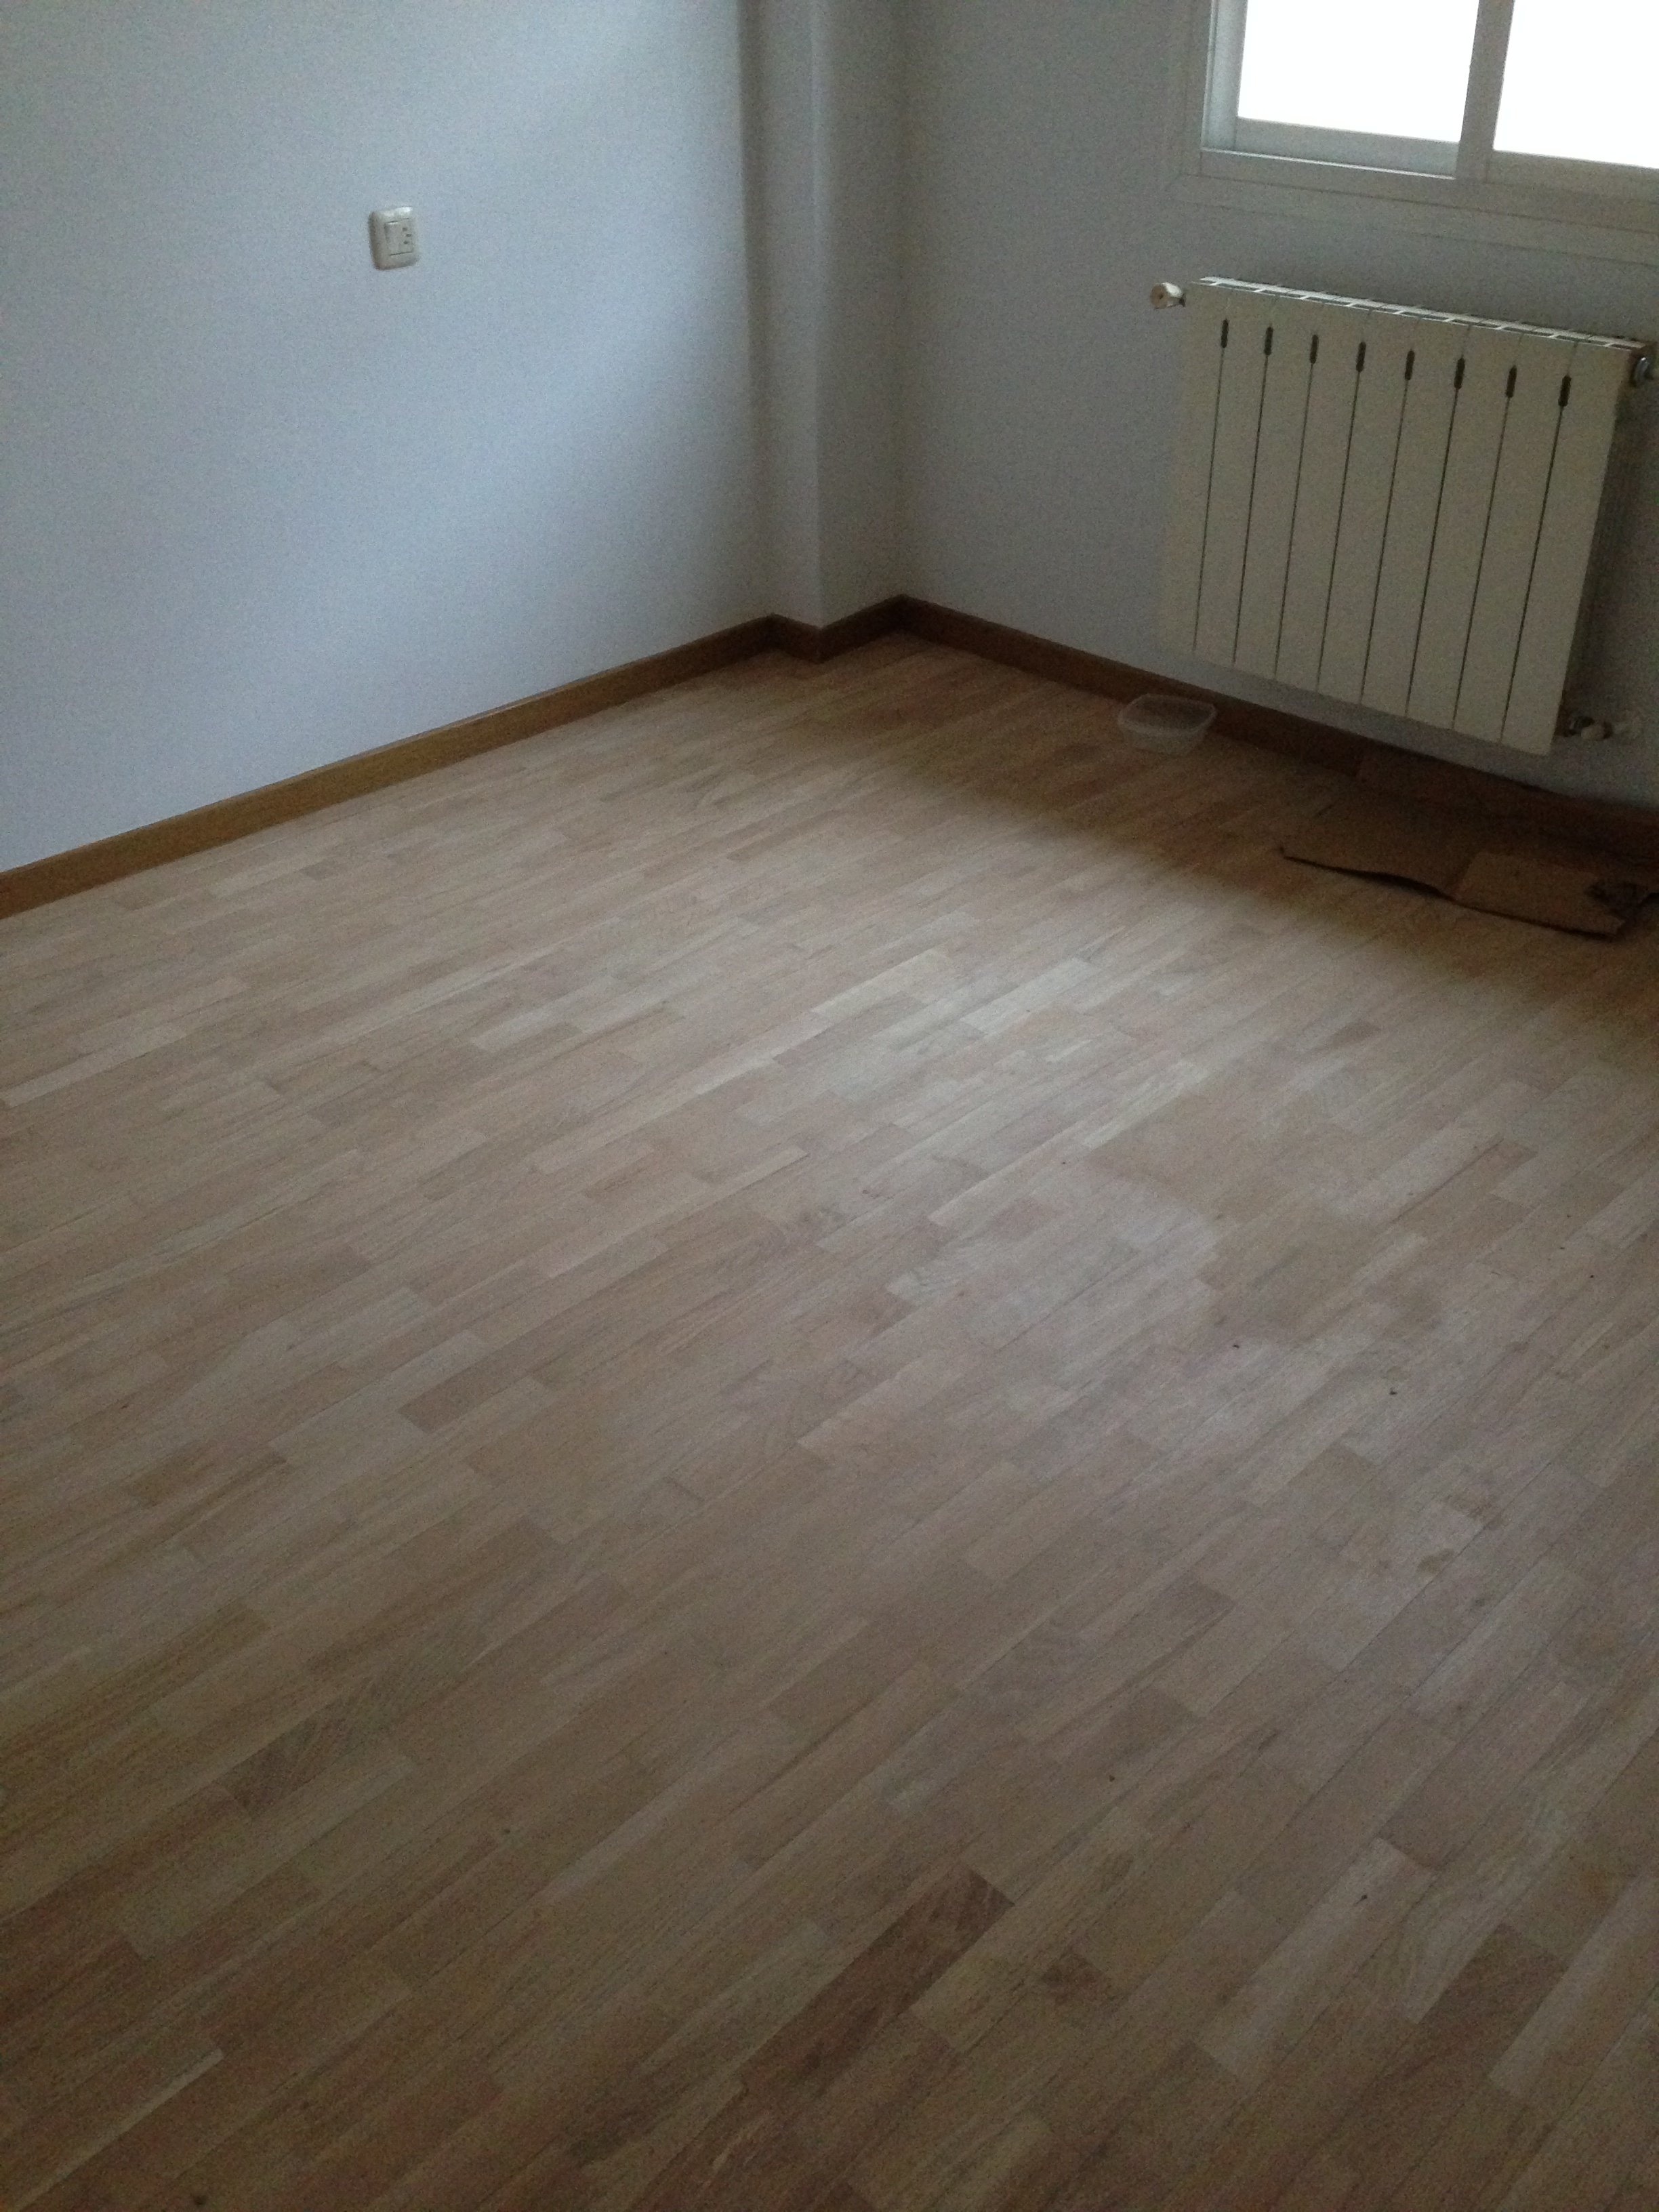 Lijar Y Barnizar Suelo Parquet Lijar Parquet Uno Mismo Finest Download By Tablet With